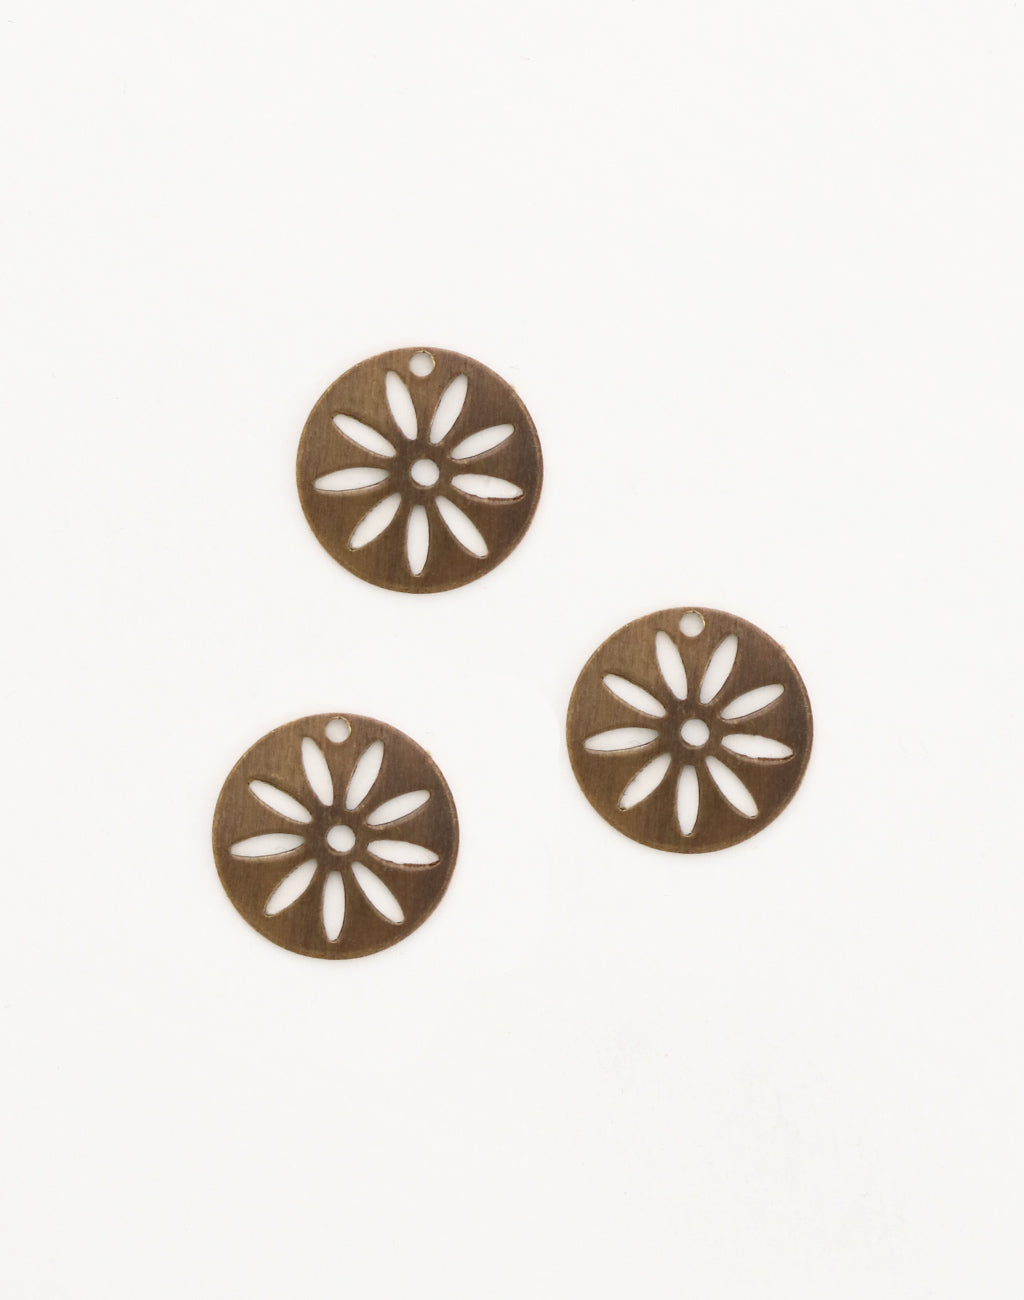 Flower Stencil, 16mm, (3pcs)